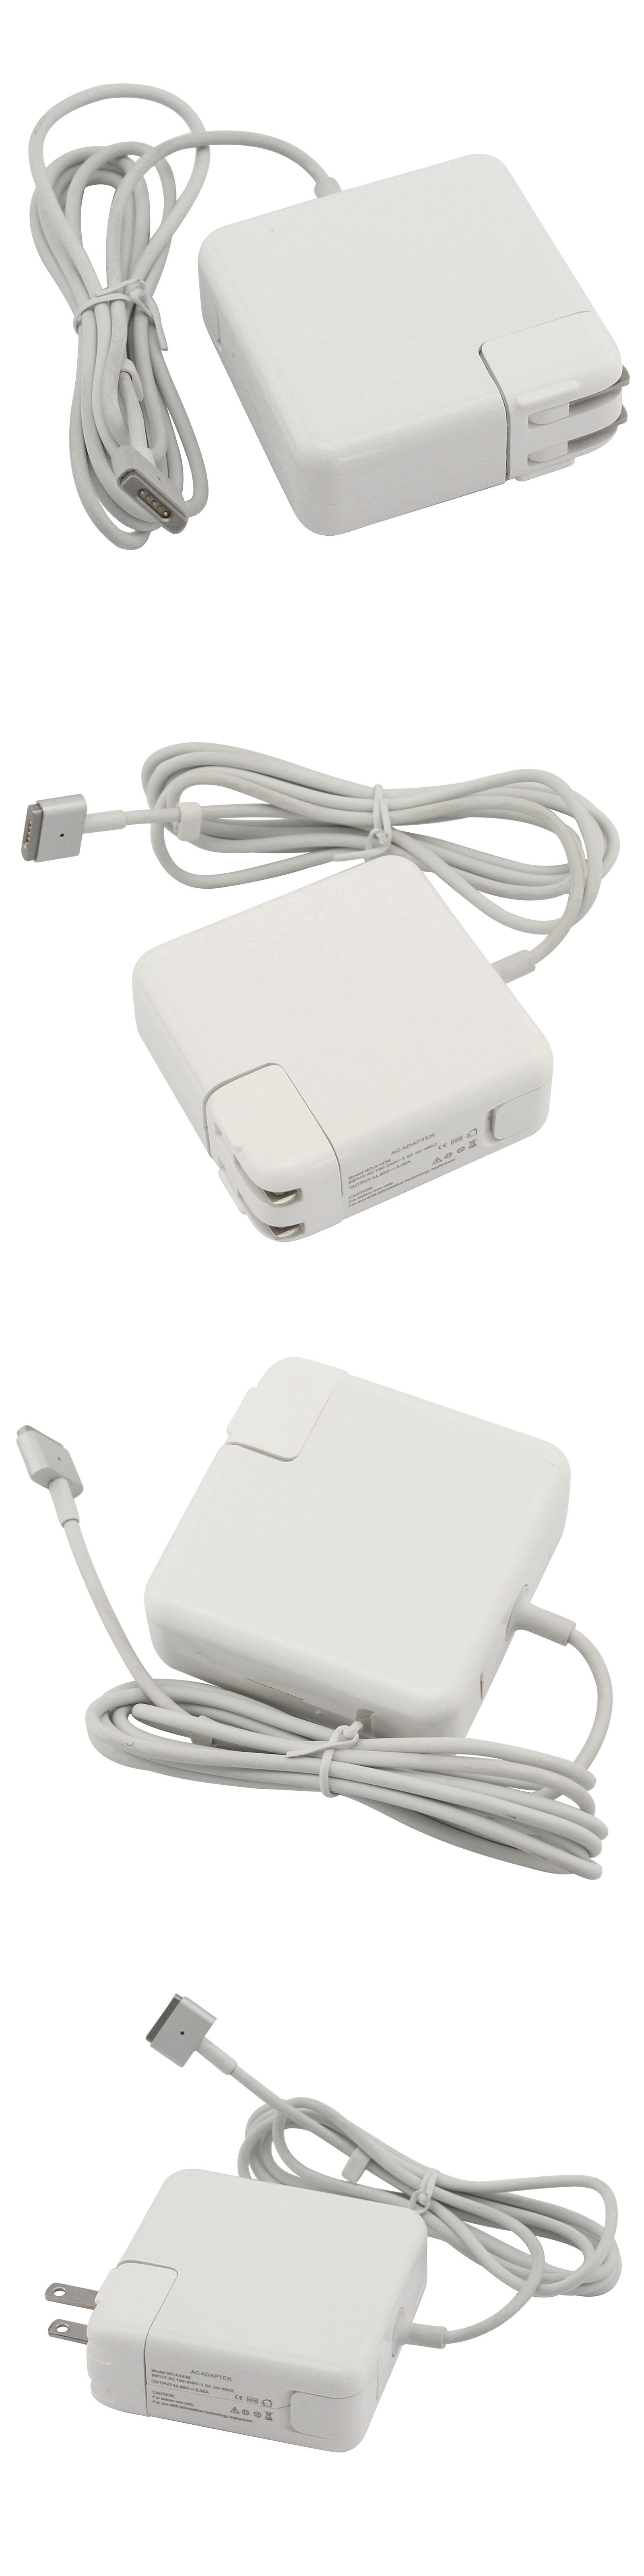 Try These Apple Macbook Air Charger Ebay {Mahindra Racing}